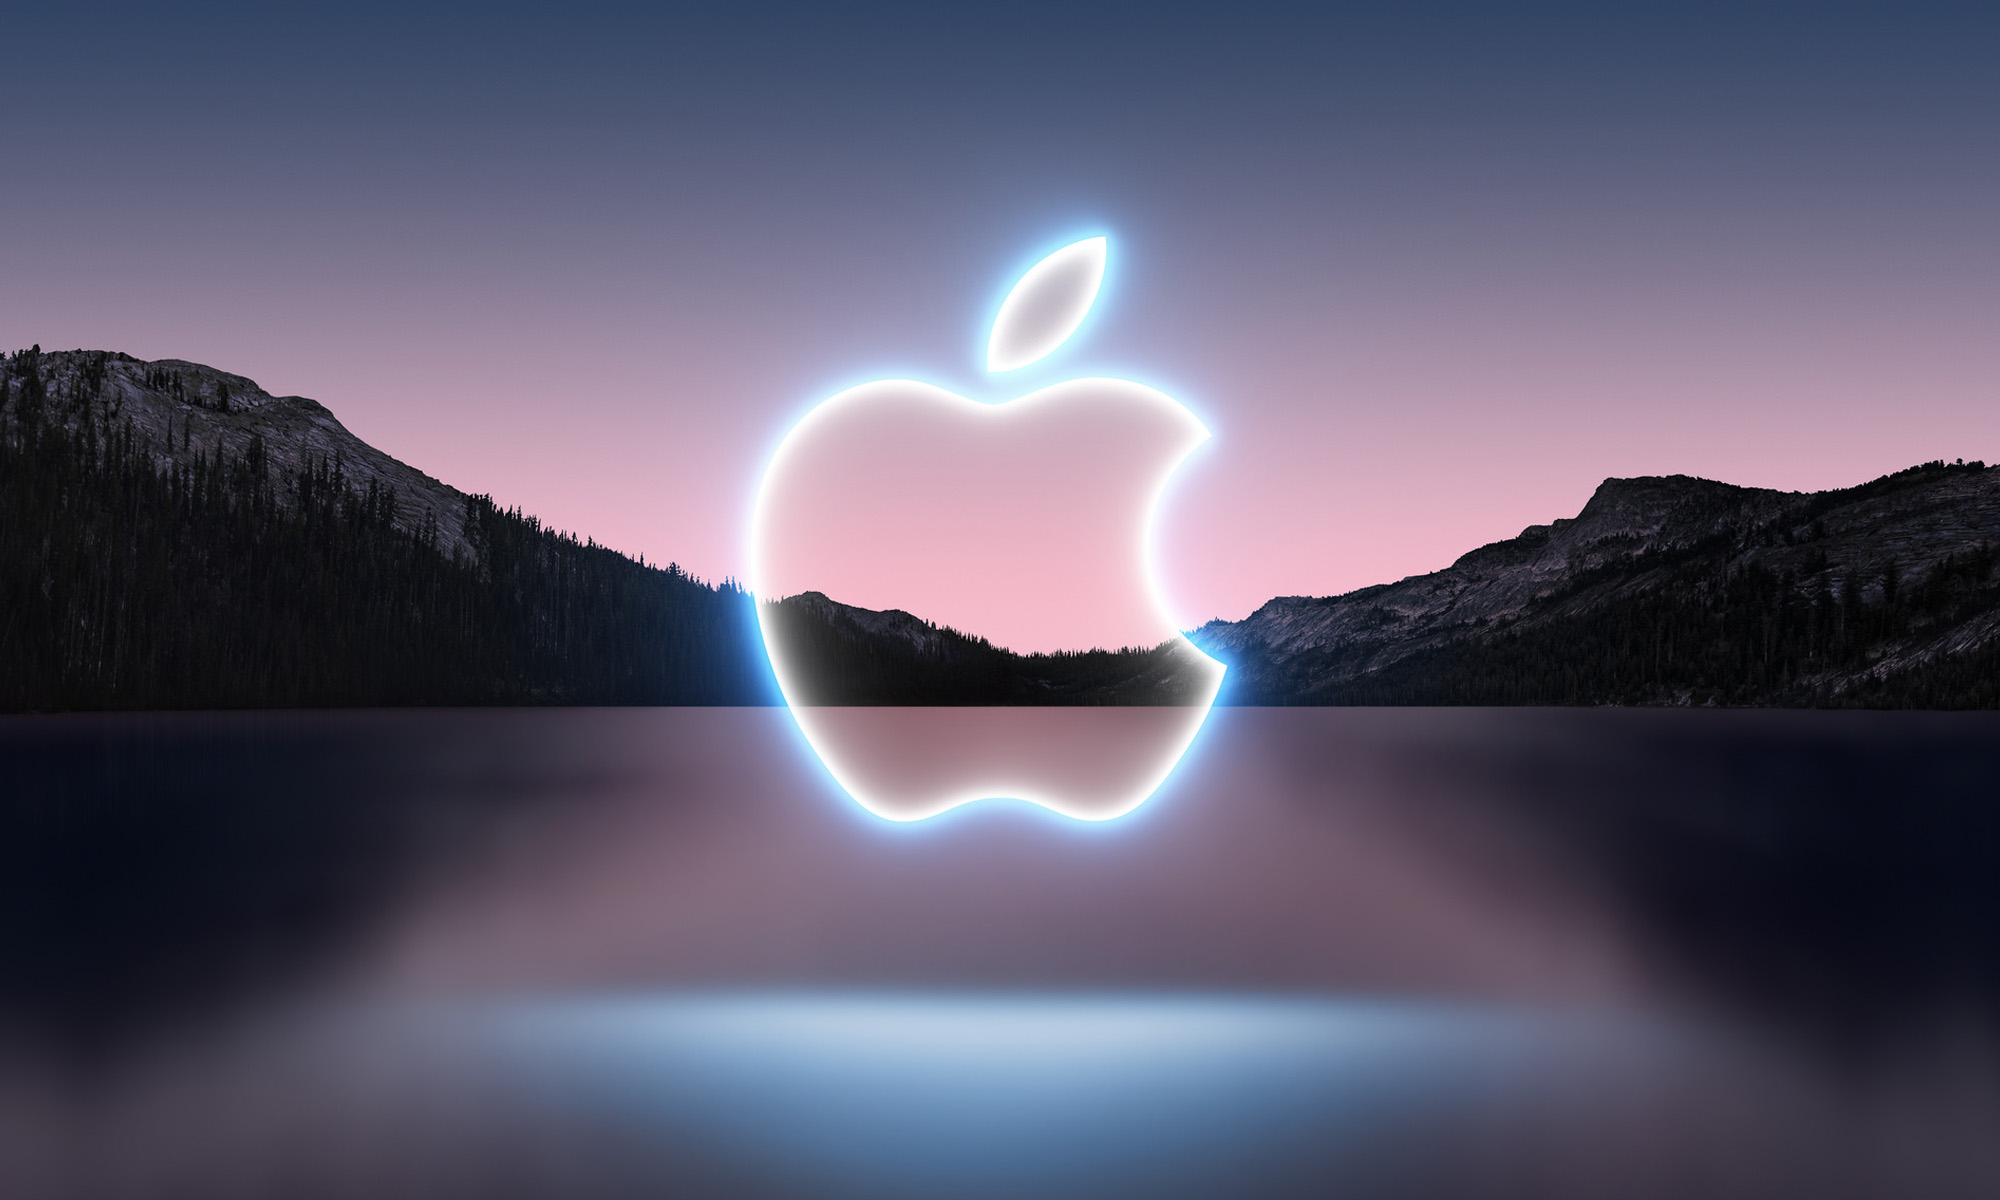 apple's california streaming is set to take place on september 14